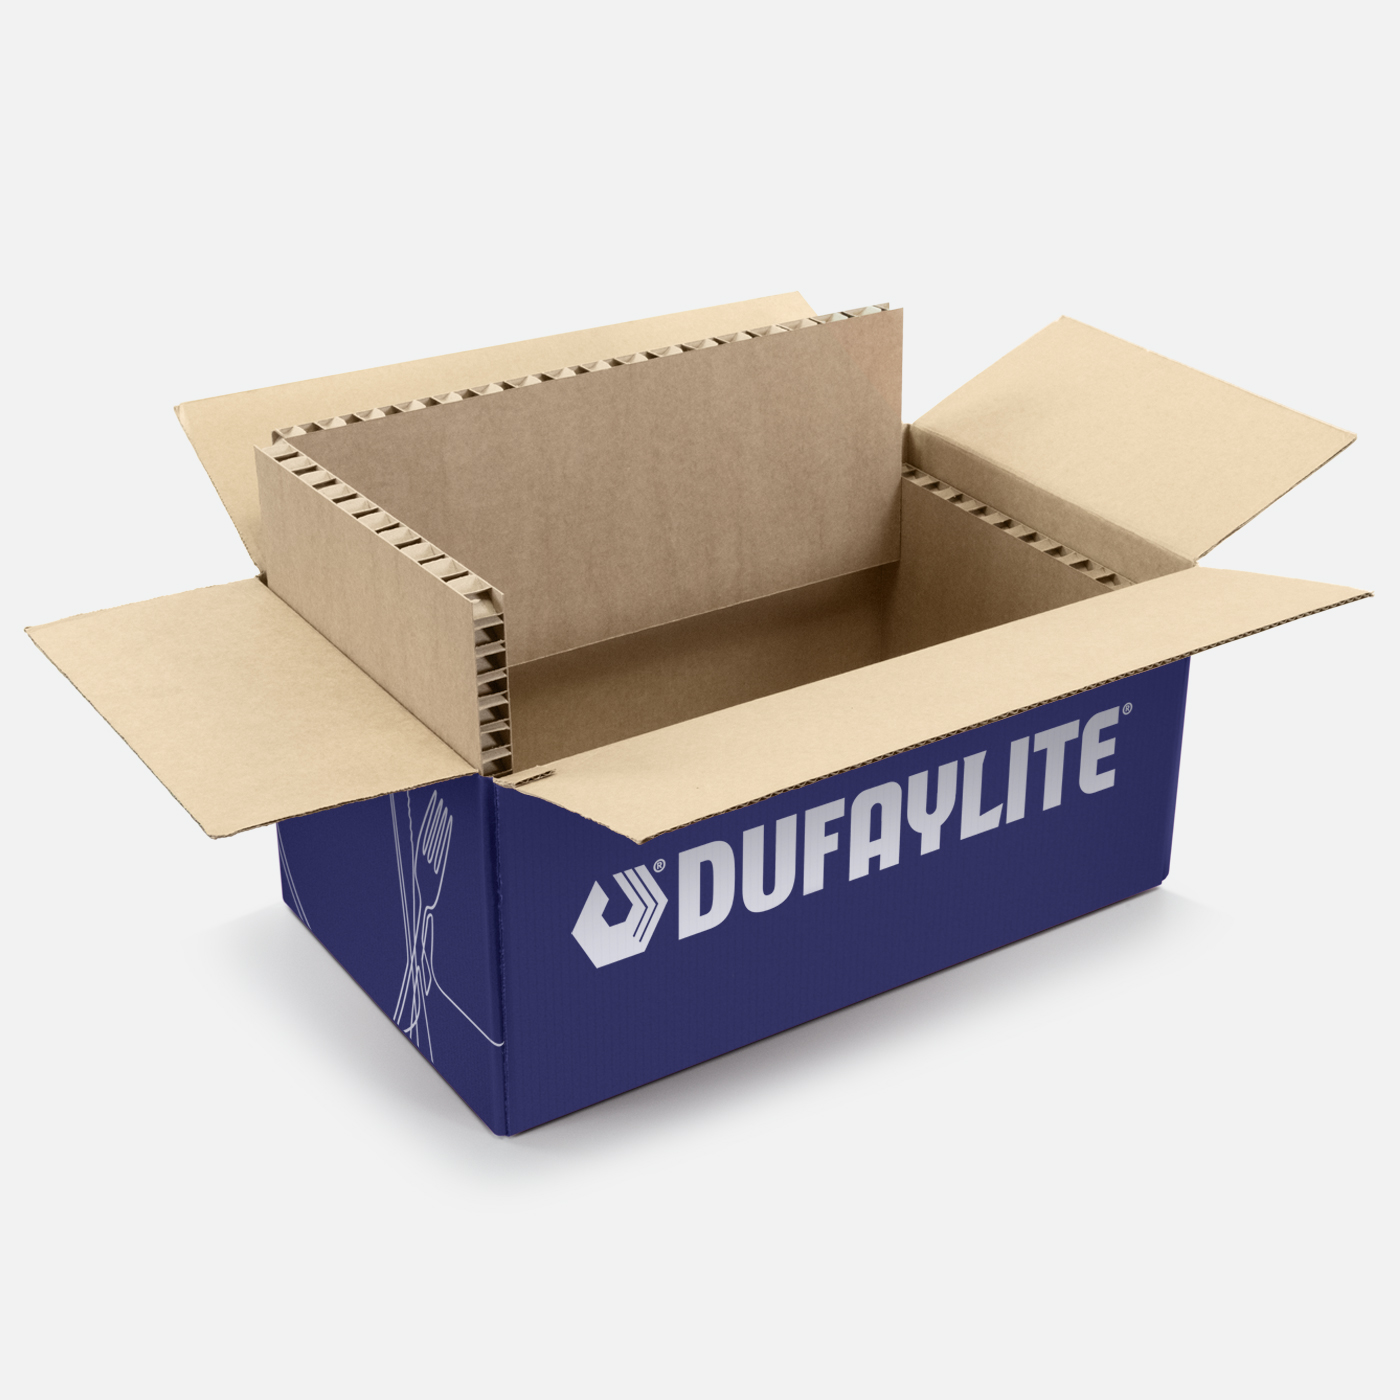 Thermal packaging and protection by Dufaylite